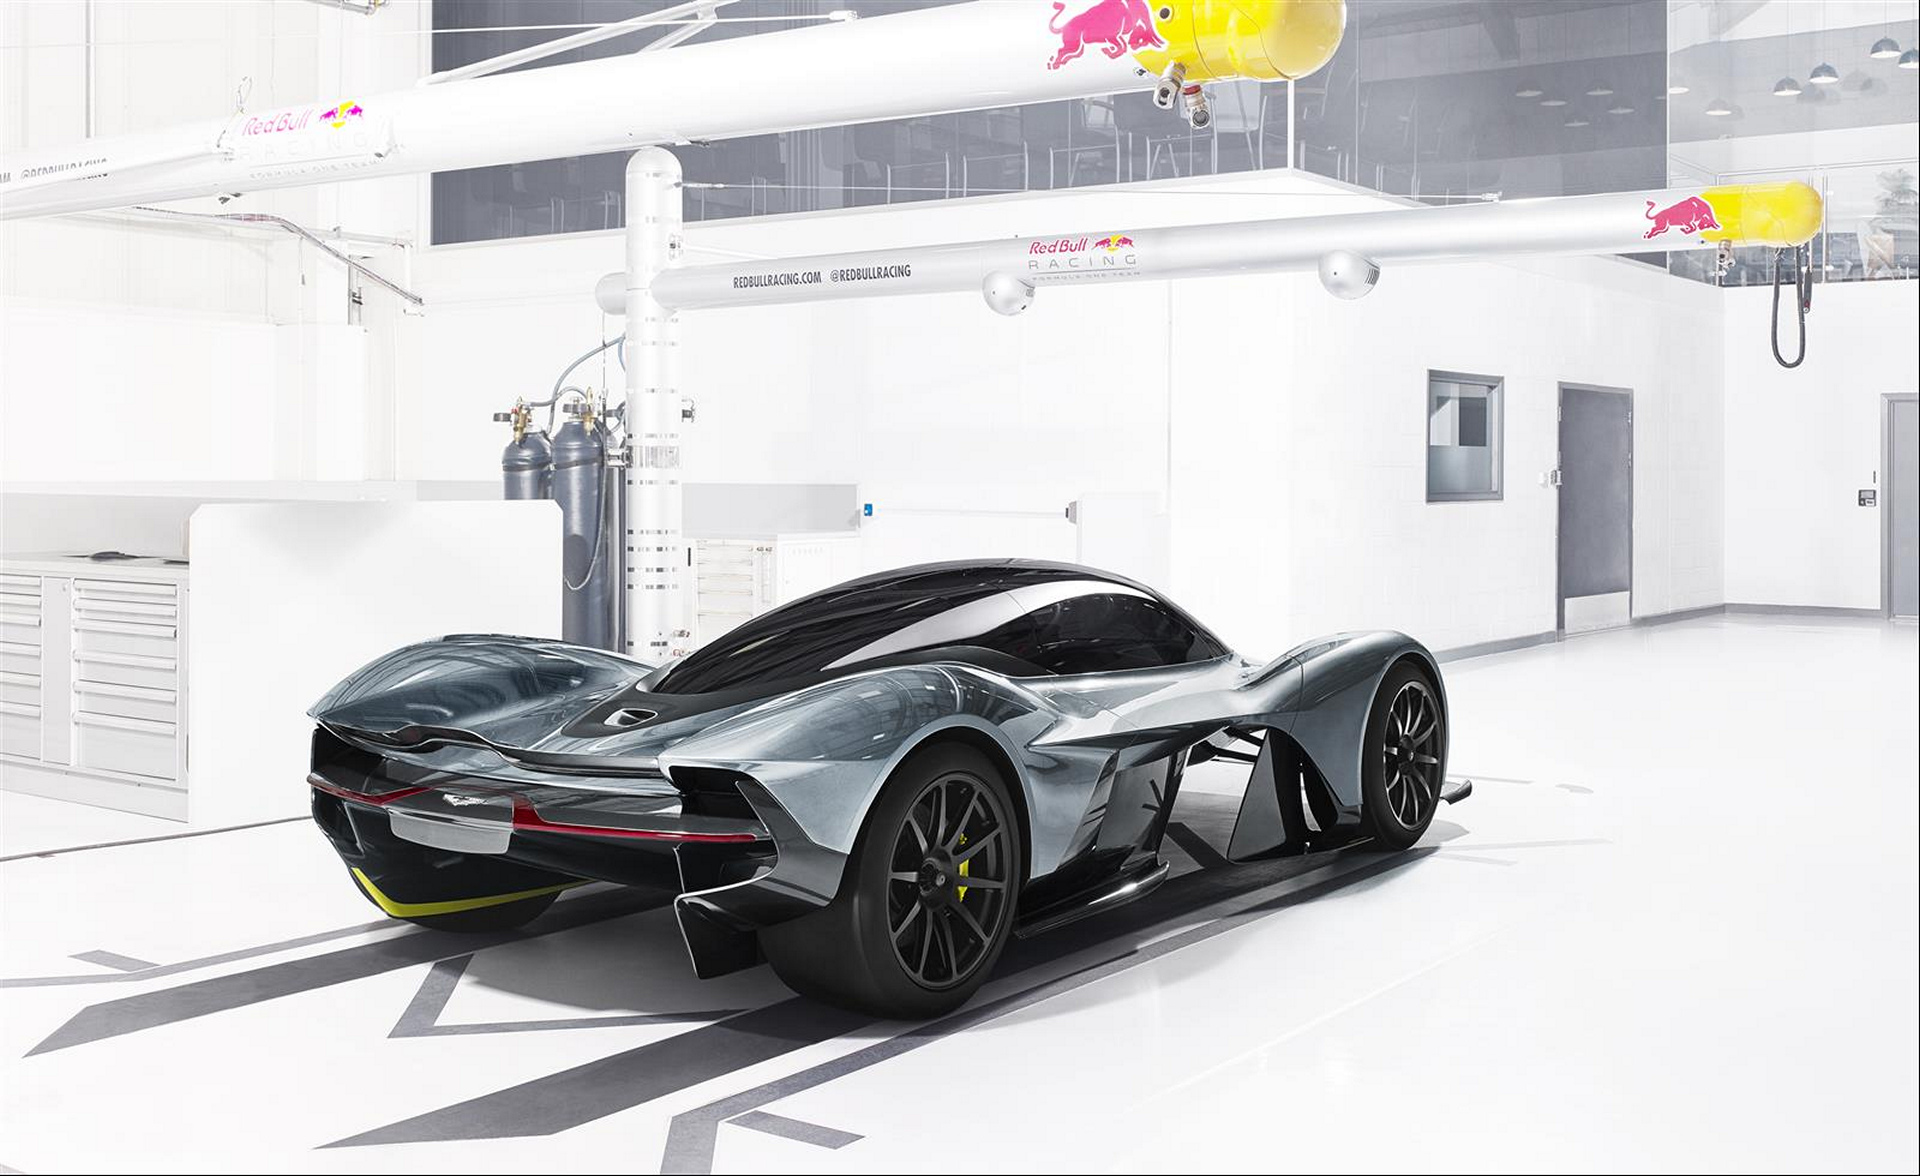 Aston Martin AM-RB 001 © Aston Martin Lagonda Limited